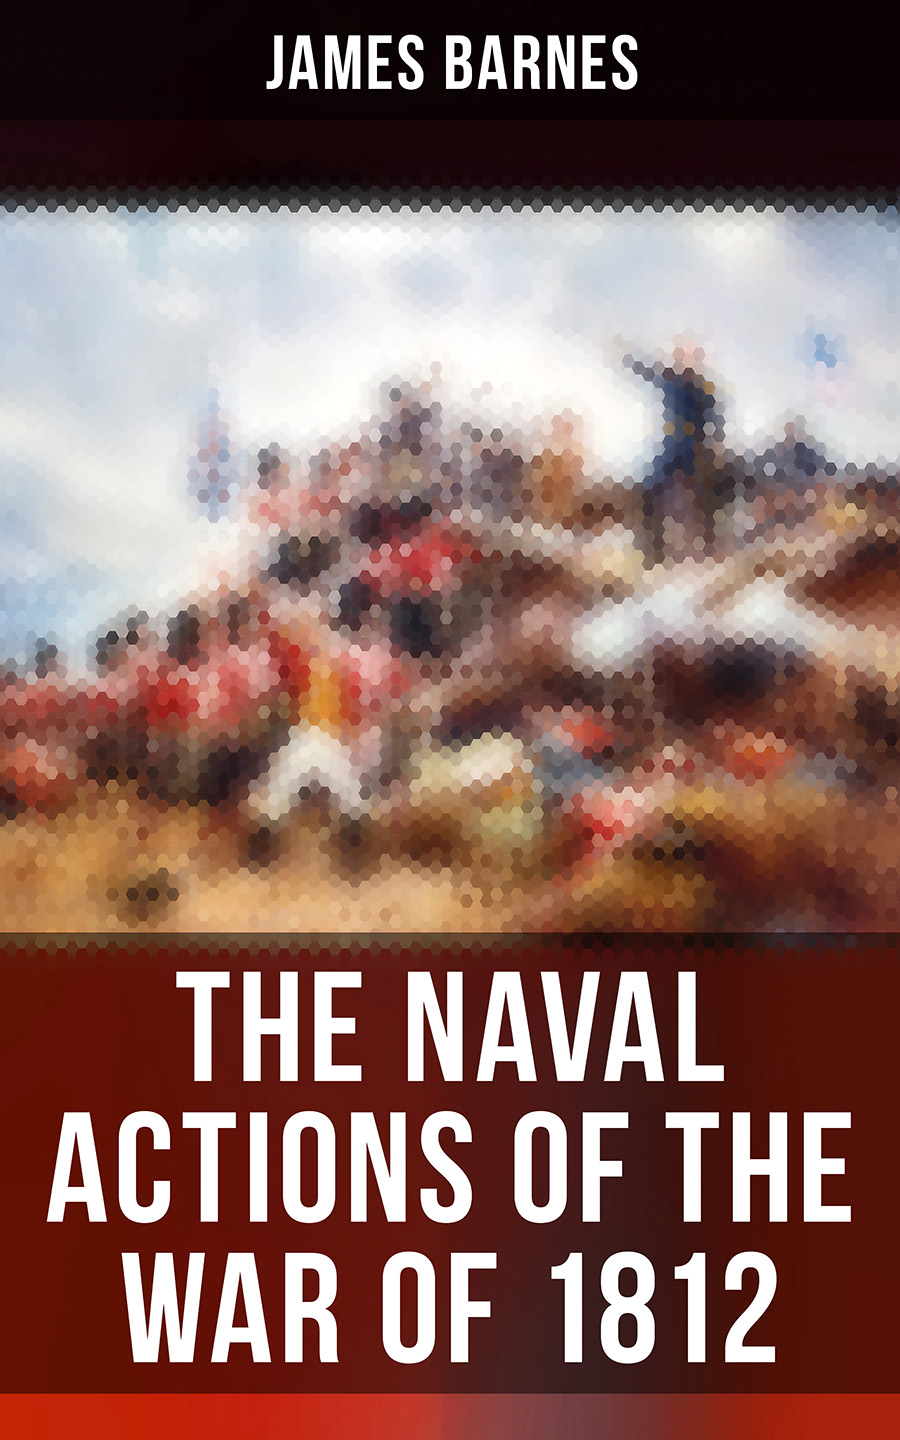 James Barnes The Naval Actions of the War of 1812